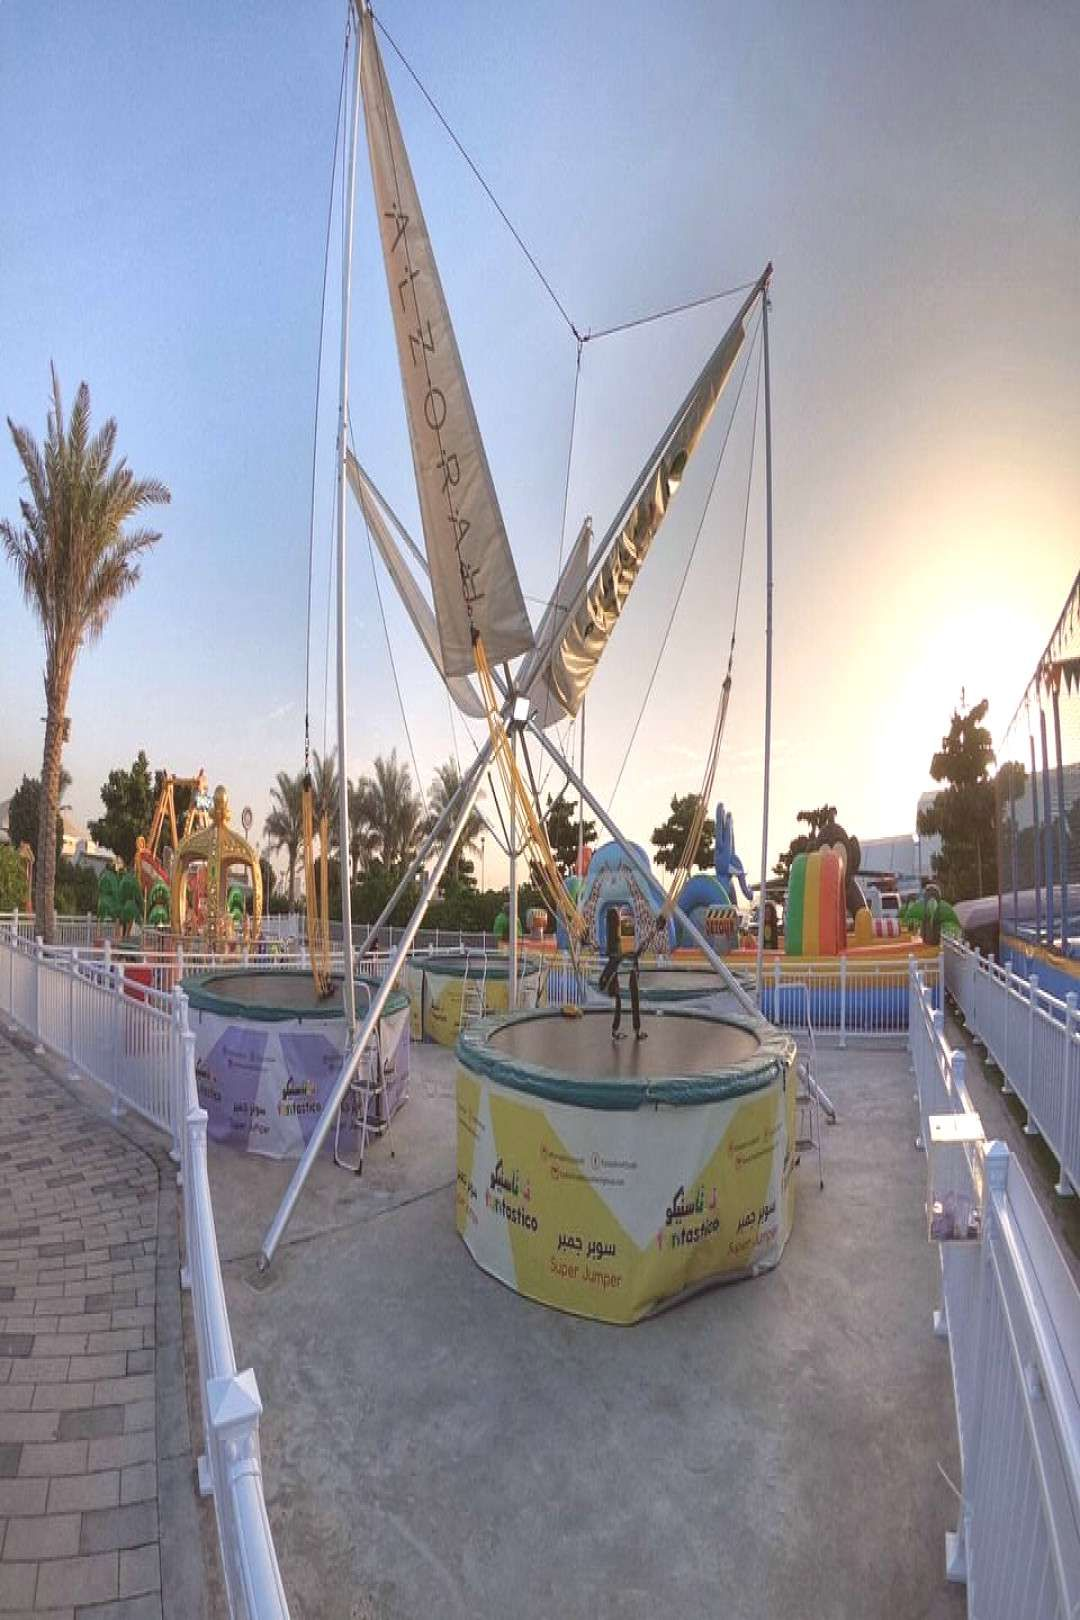 #skyboatoutdoor #water #and كيف تحضيراتكم للعطلة؟ ألعابنا و وساYou can find Kids games and more on our website.كيف تحضيراتكم للعطلة؟ ألعابنا و وسا